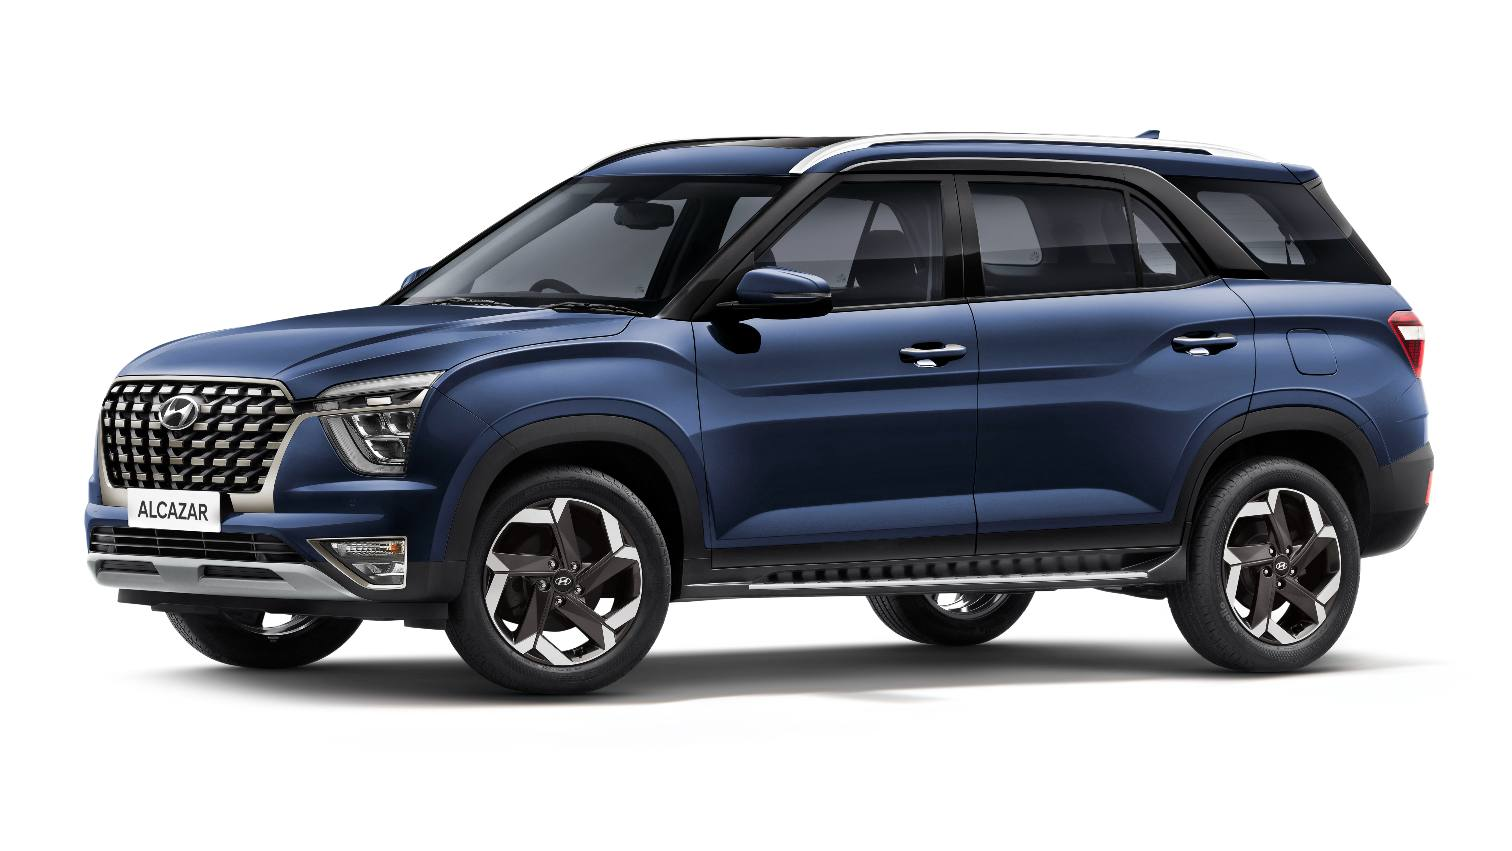 Hyundai Alcazar launched in India, launch prices for three-row SUV range start at Rs 16.30 lakh – Technology News, Firstpost